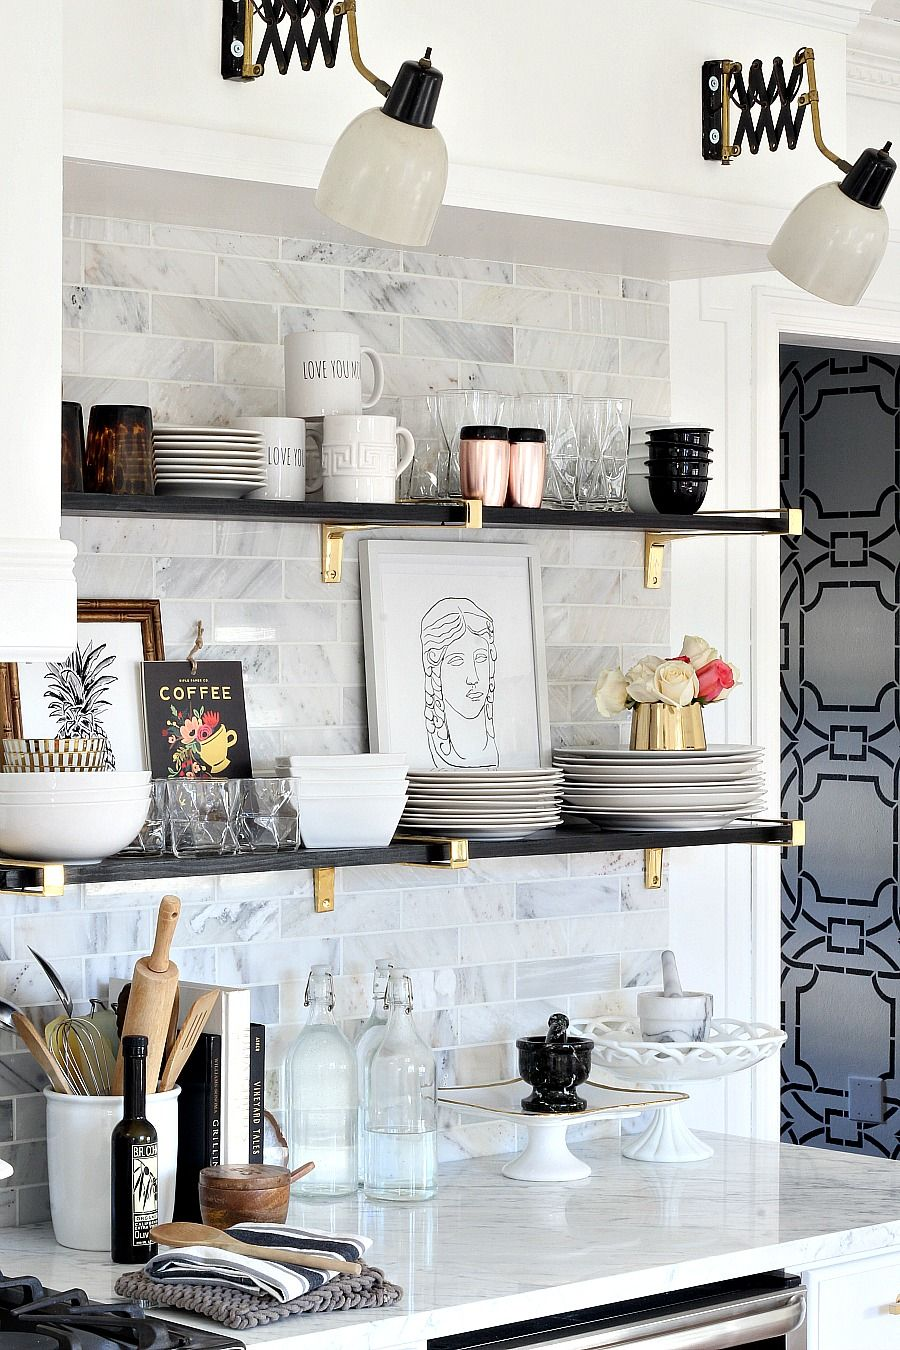 Our black gold marble and chic kitchen makeover reveal kitchen